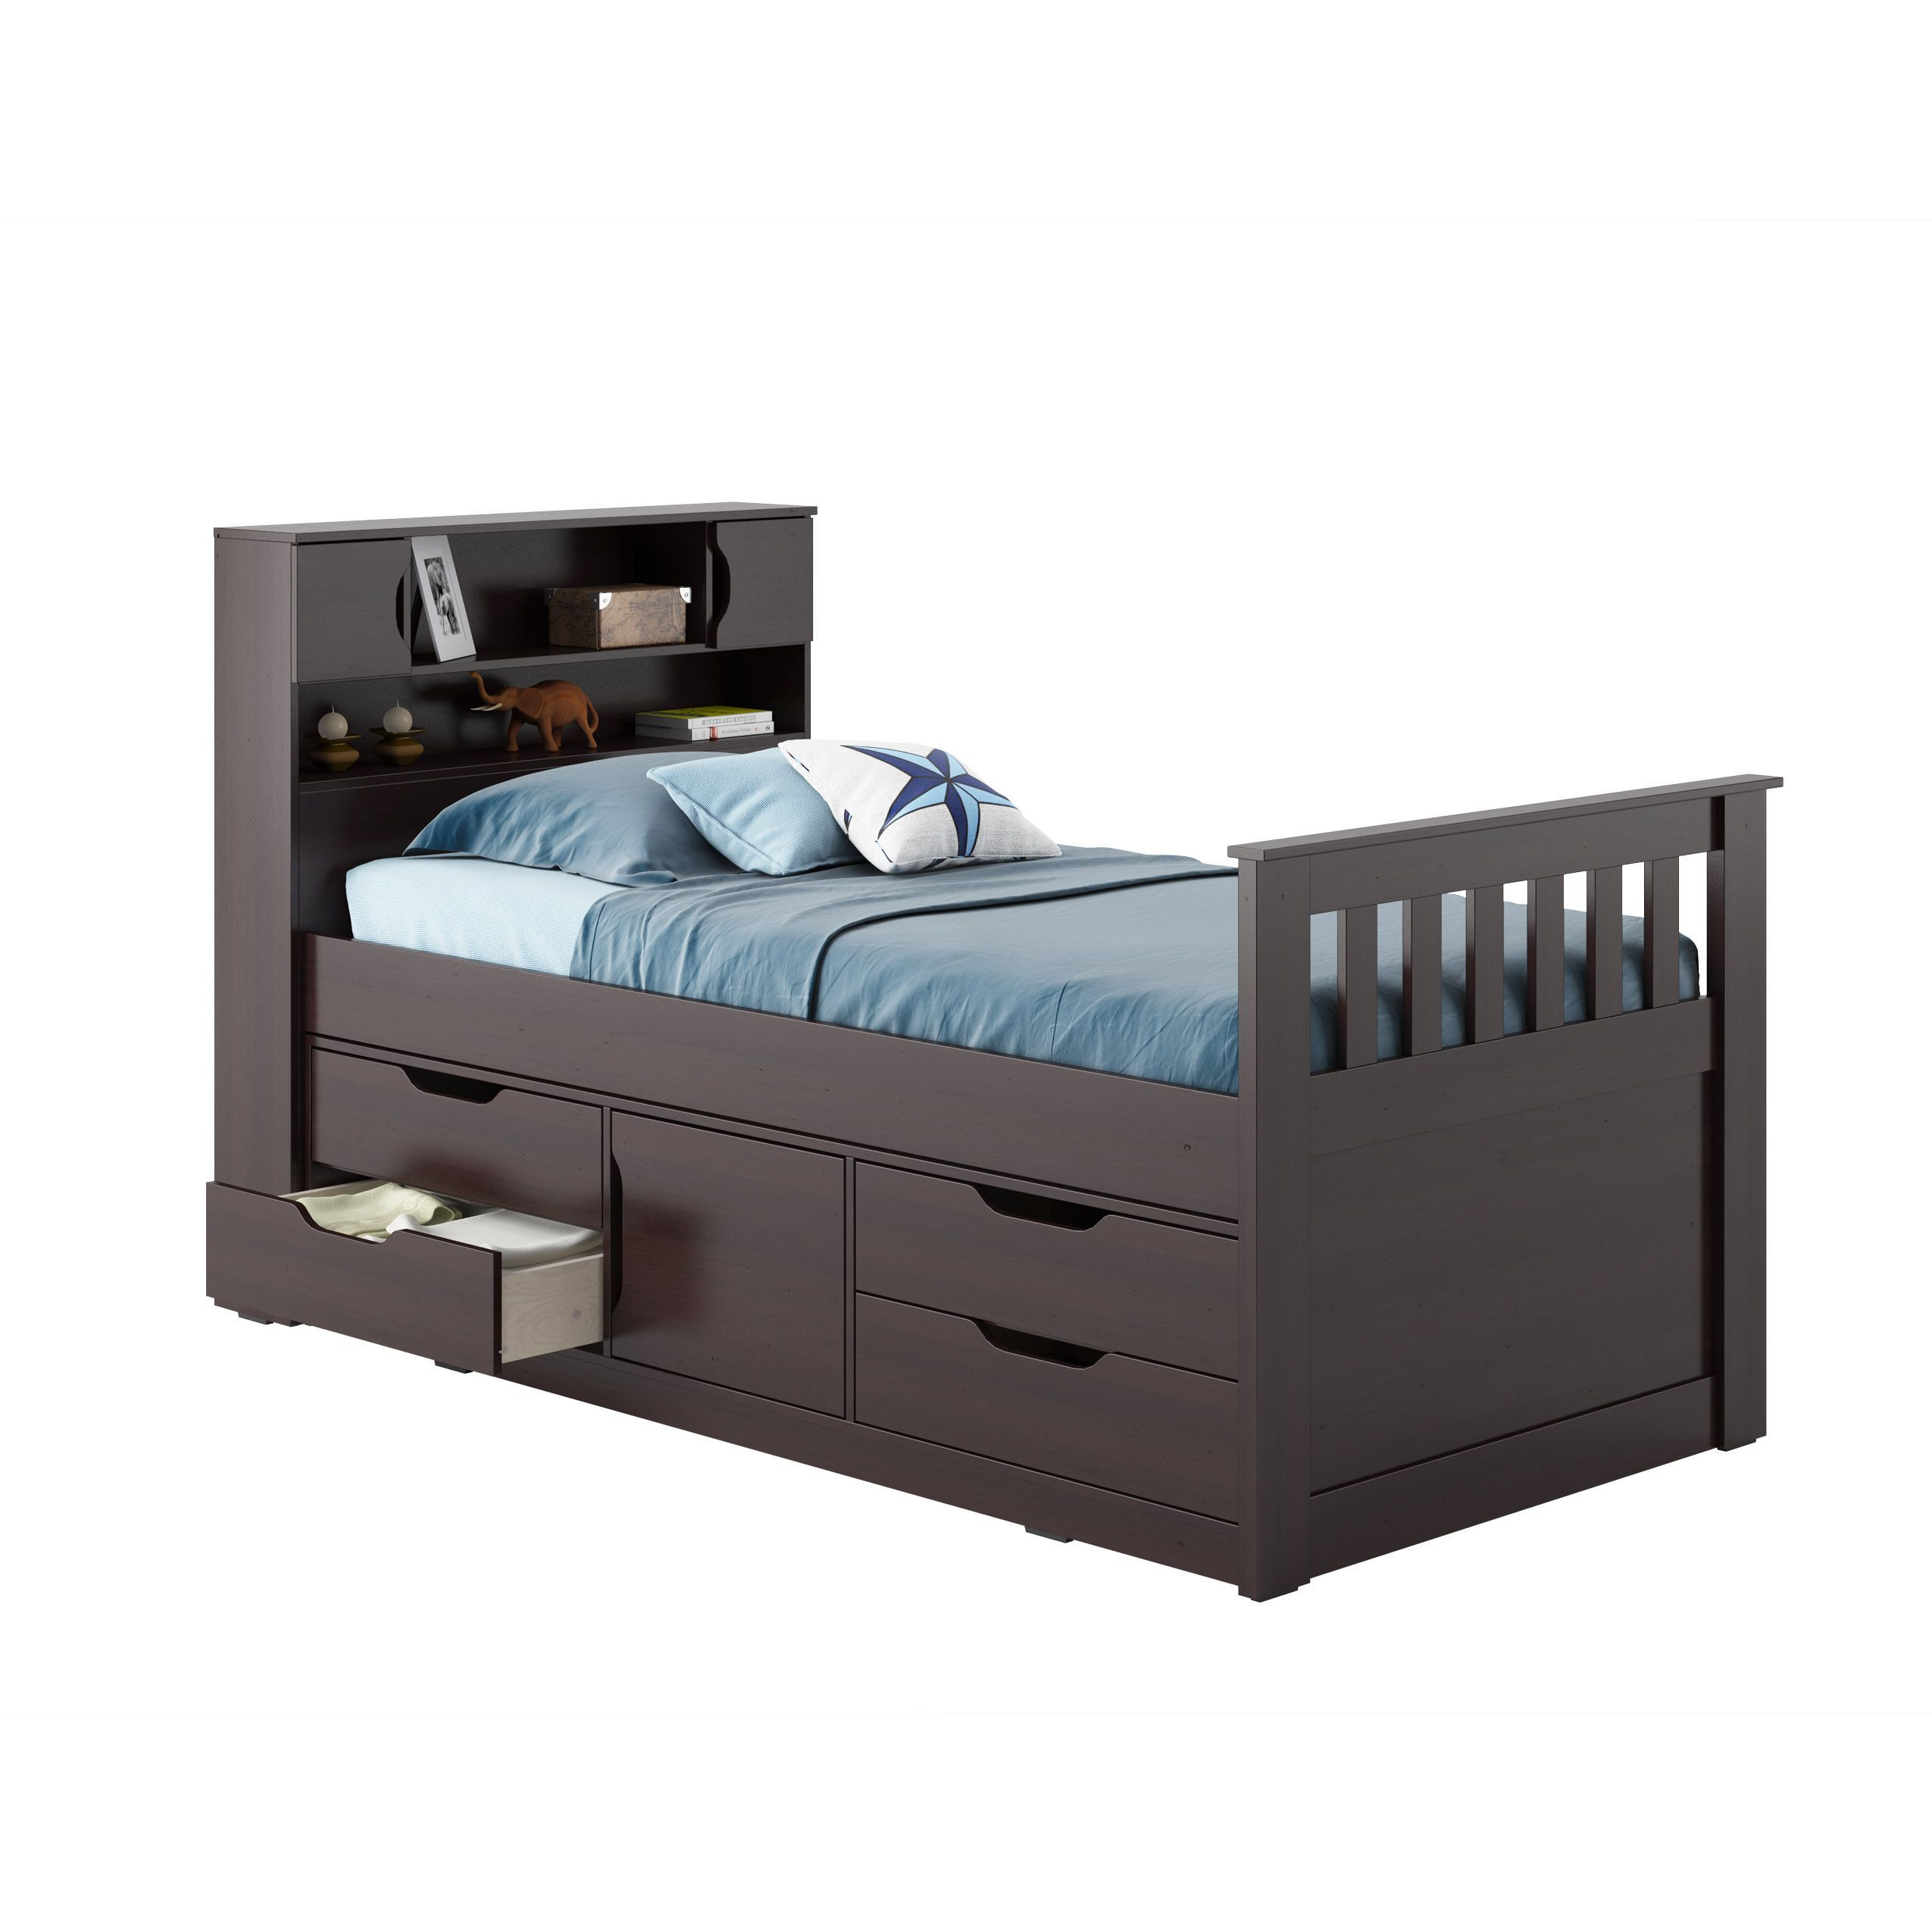 CorLiving Madison Twin/ Single Captain's Bed (White